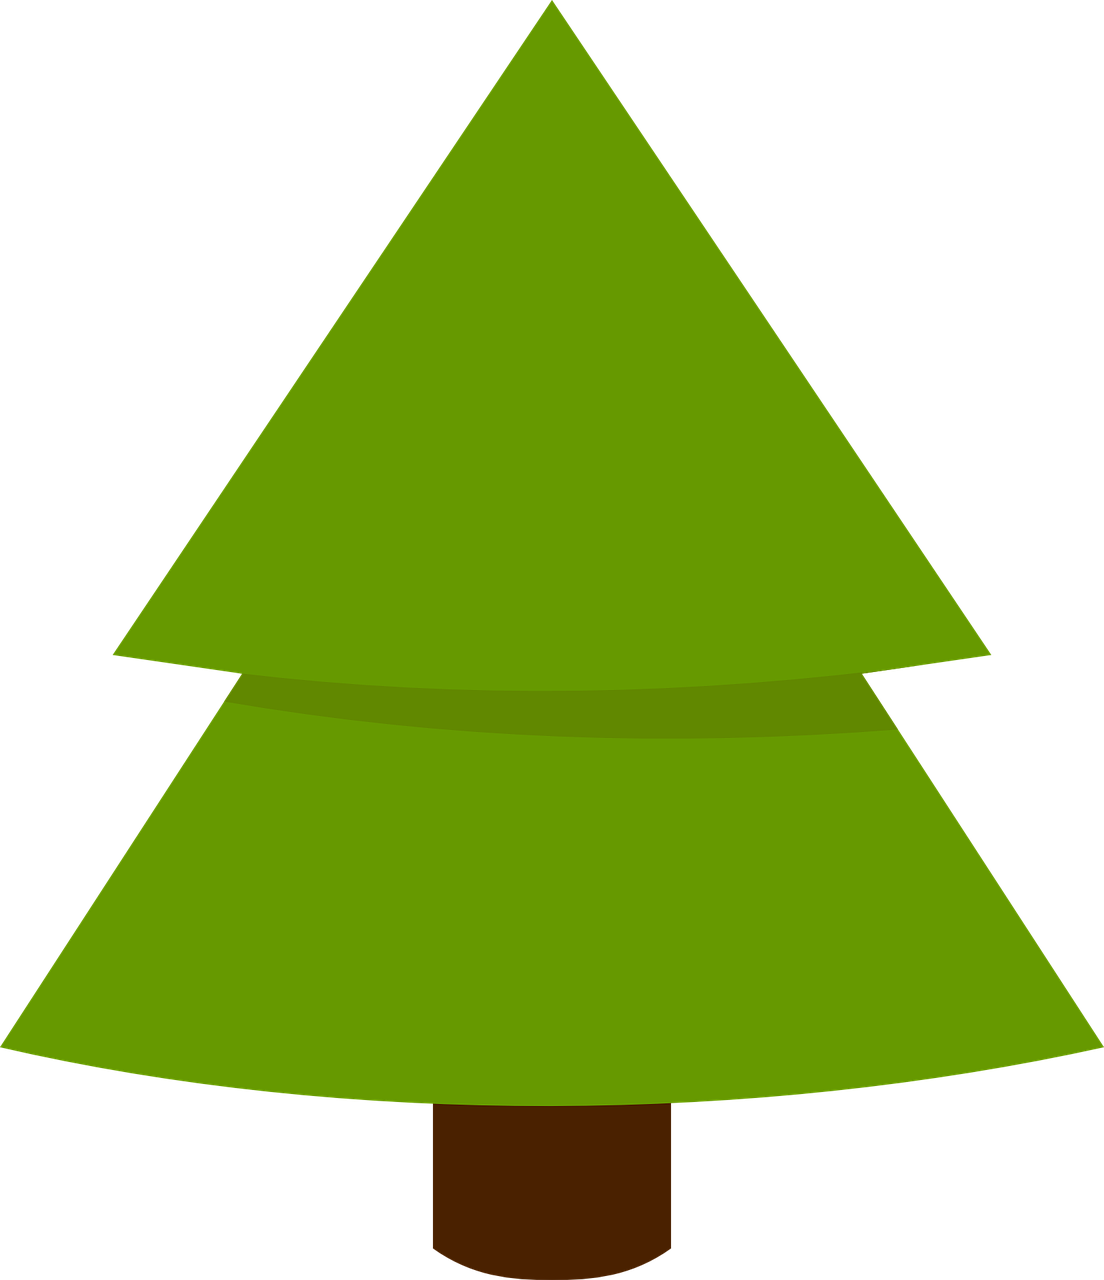 Triangle clipart tree. How to draw a